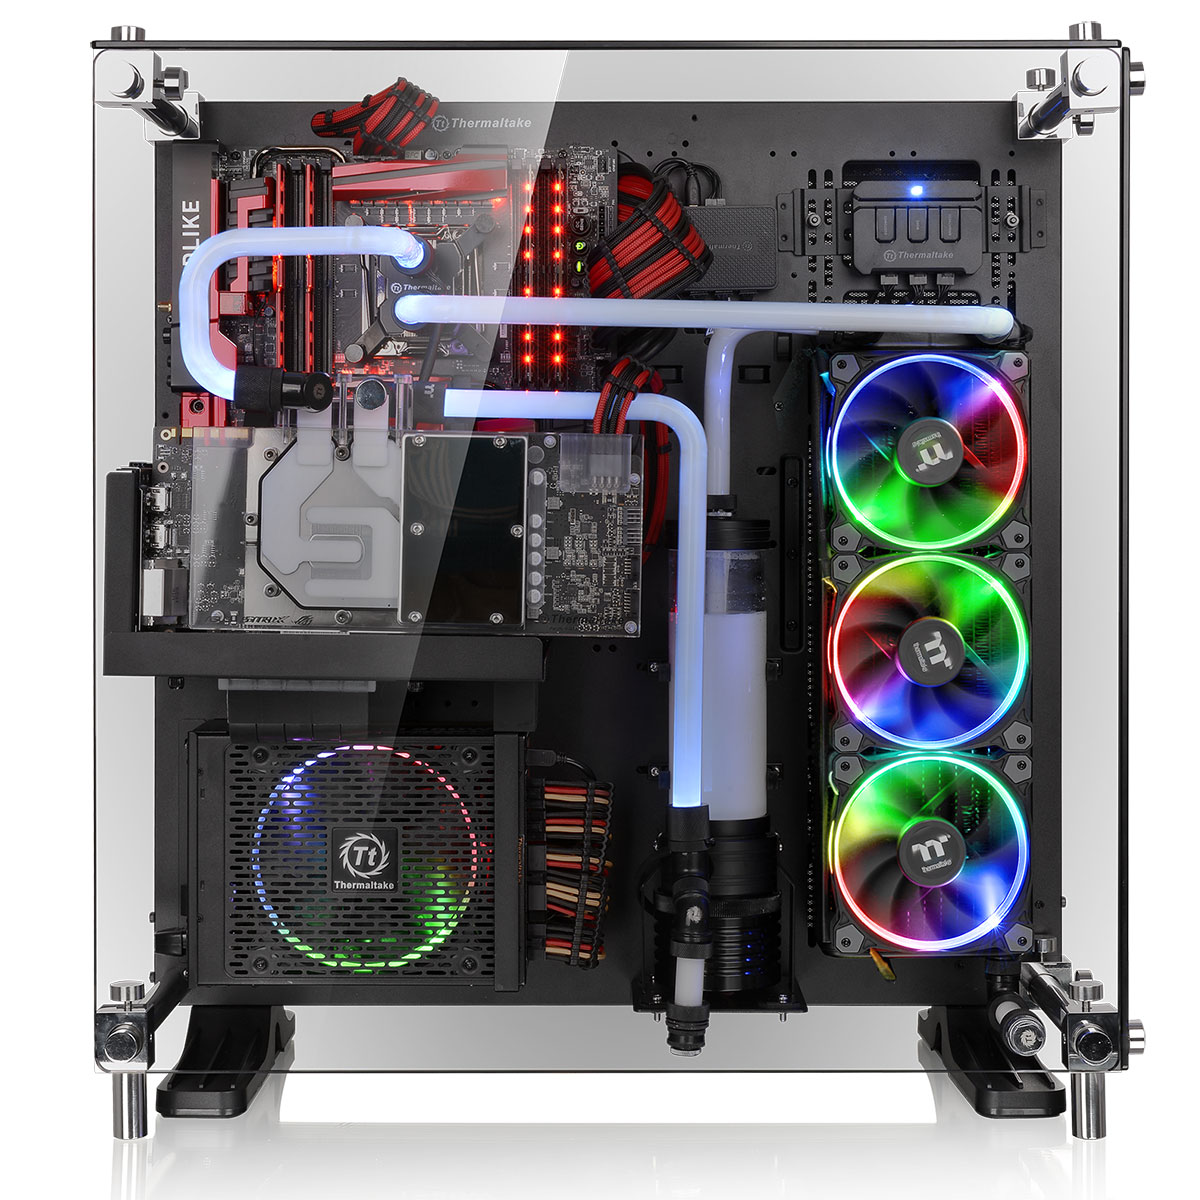 Thermaltake Pc Gaming Case Core P5 Tempered Glass Spot